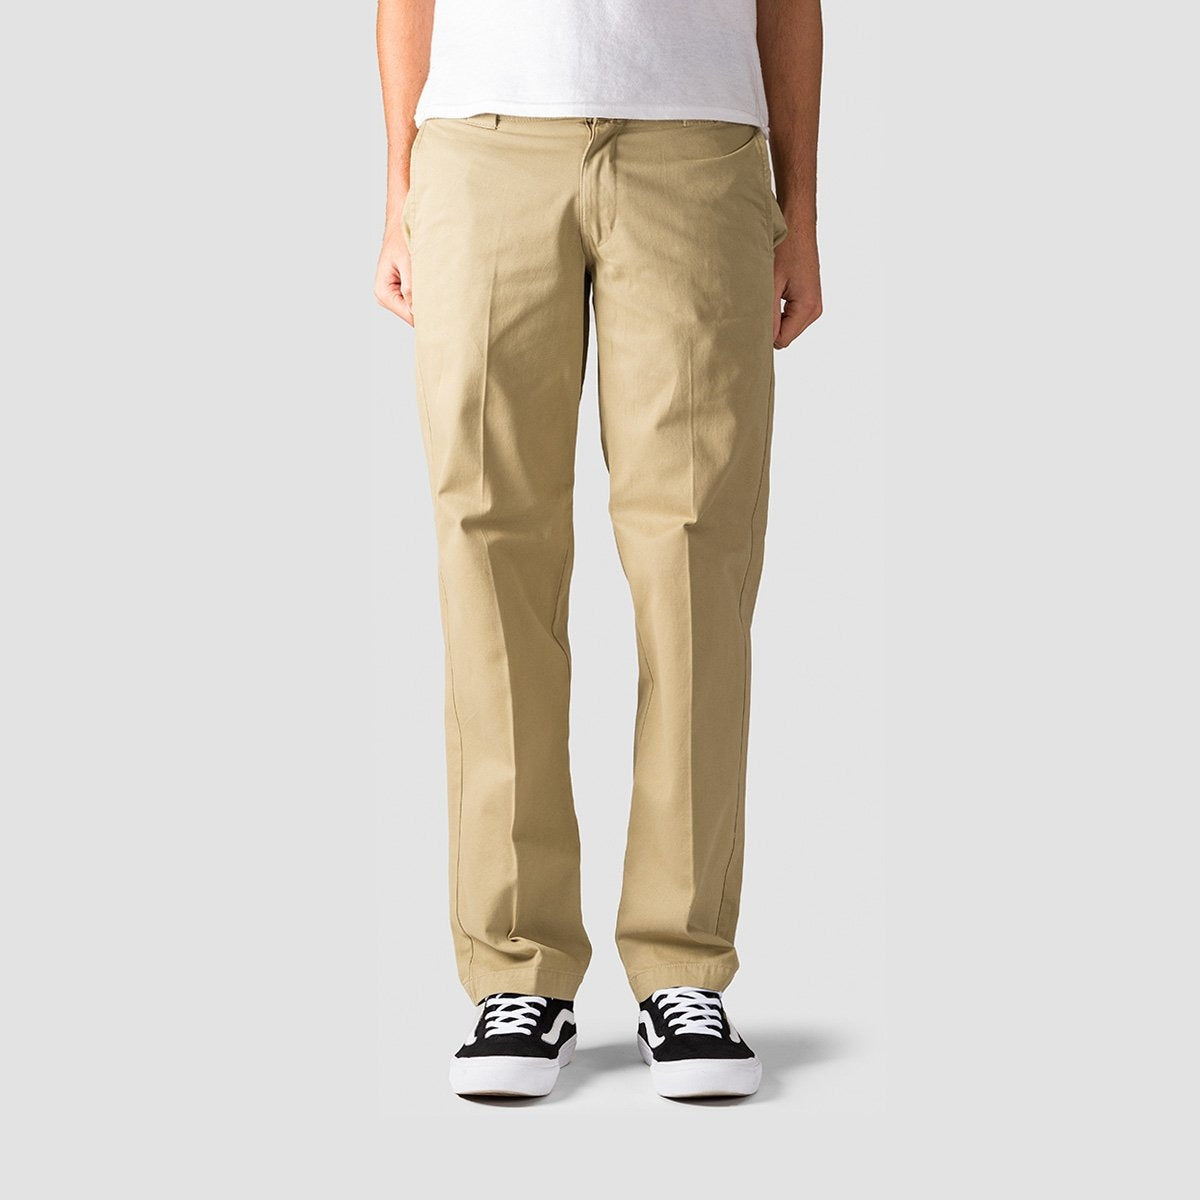 Dickies Mens Classic-Fit Casual Chino Pants